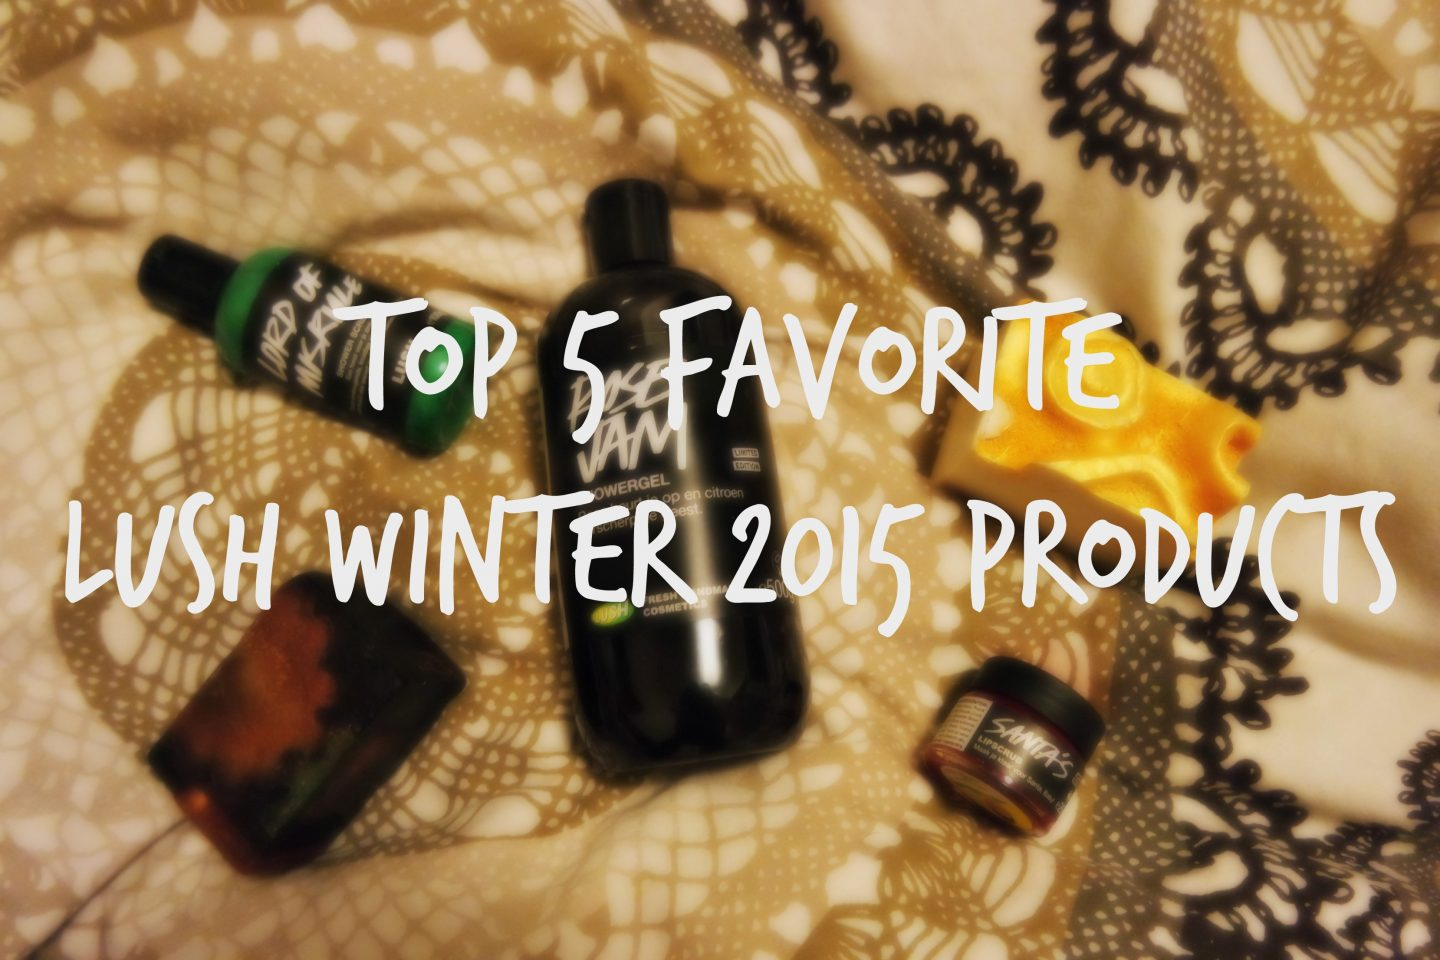 Top 5 Favorite Lush Winter 2015 Products